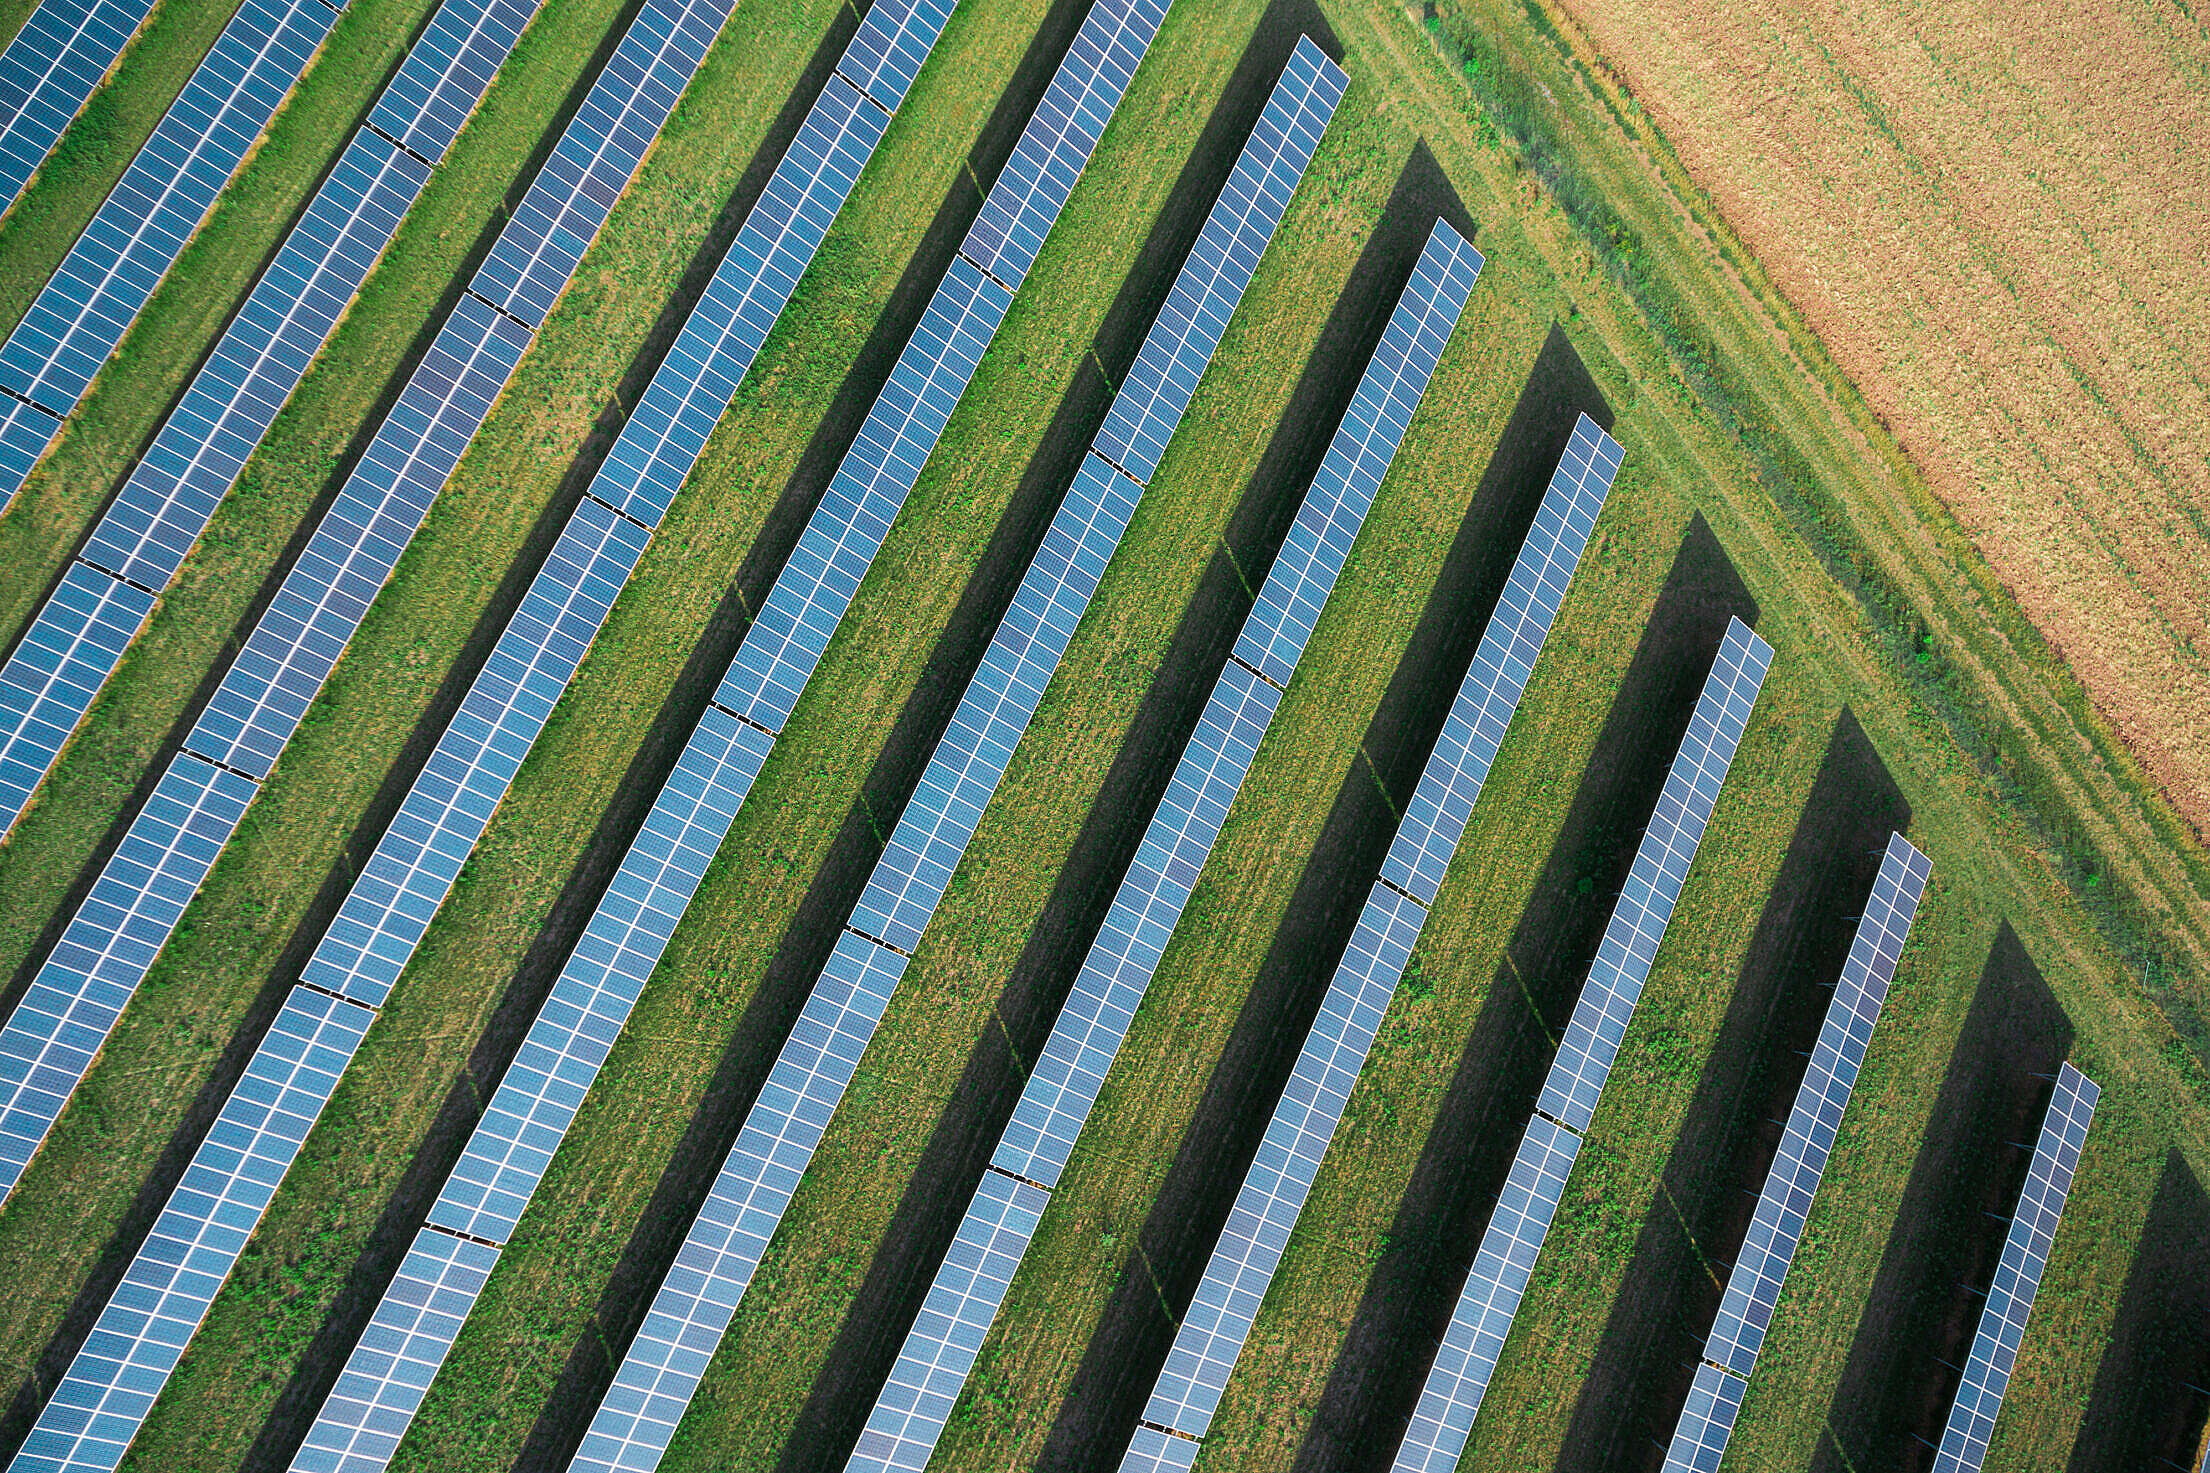 Solar Power Plant from Above Free Stock Photo